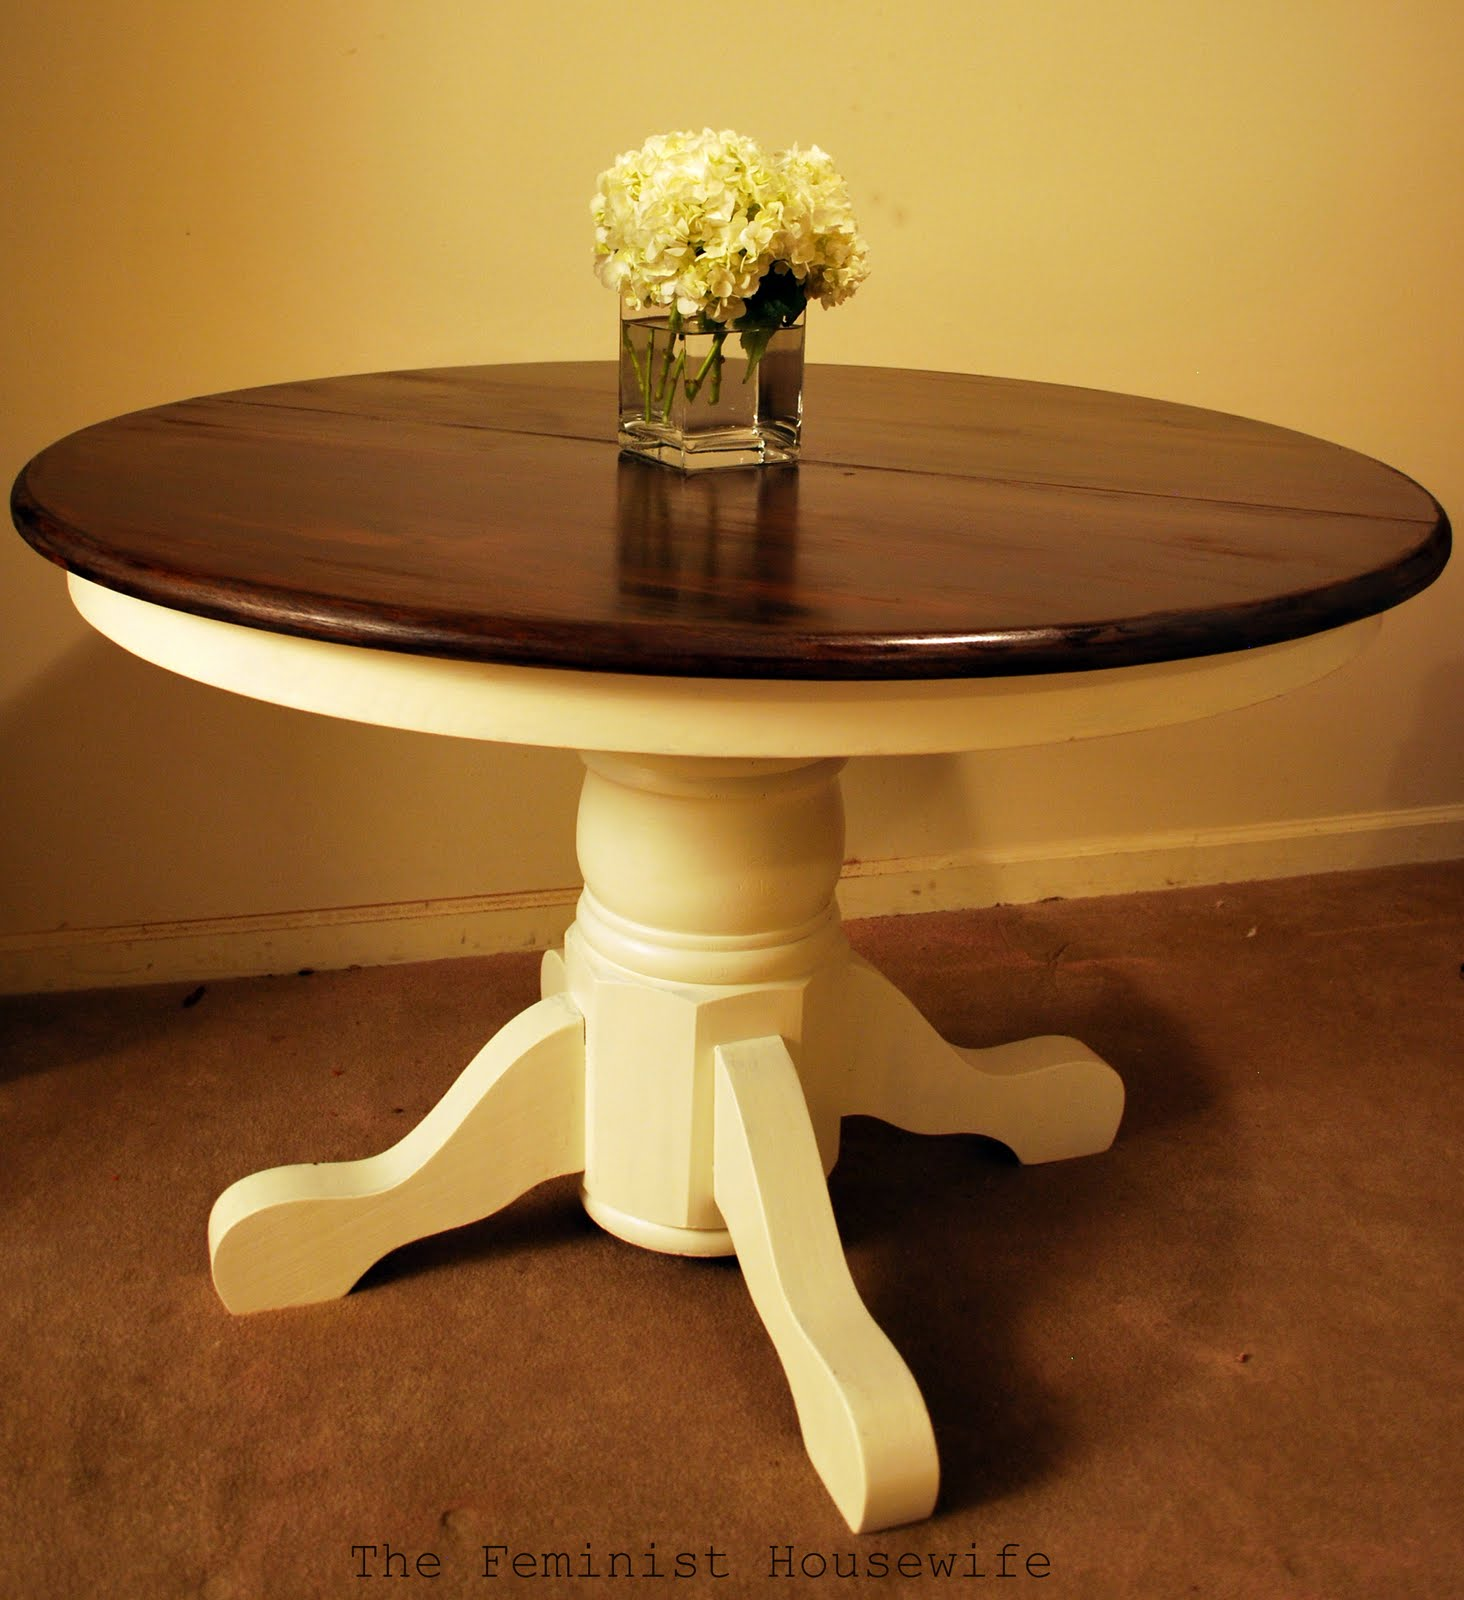 Russet street reno free pedestal table - Pedestal kitchen tables ...